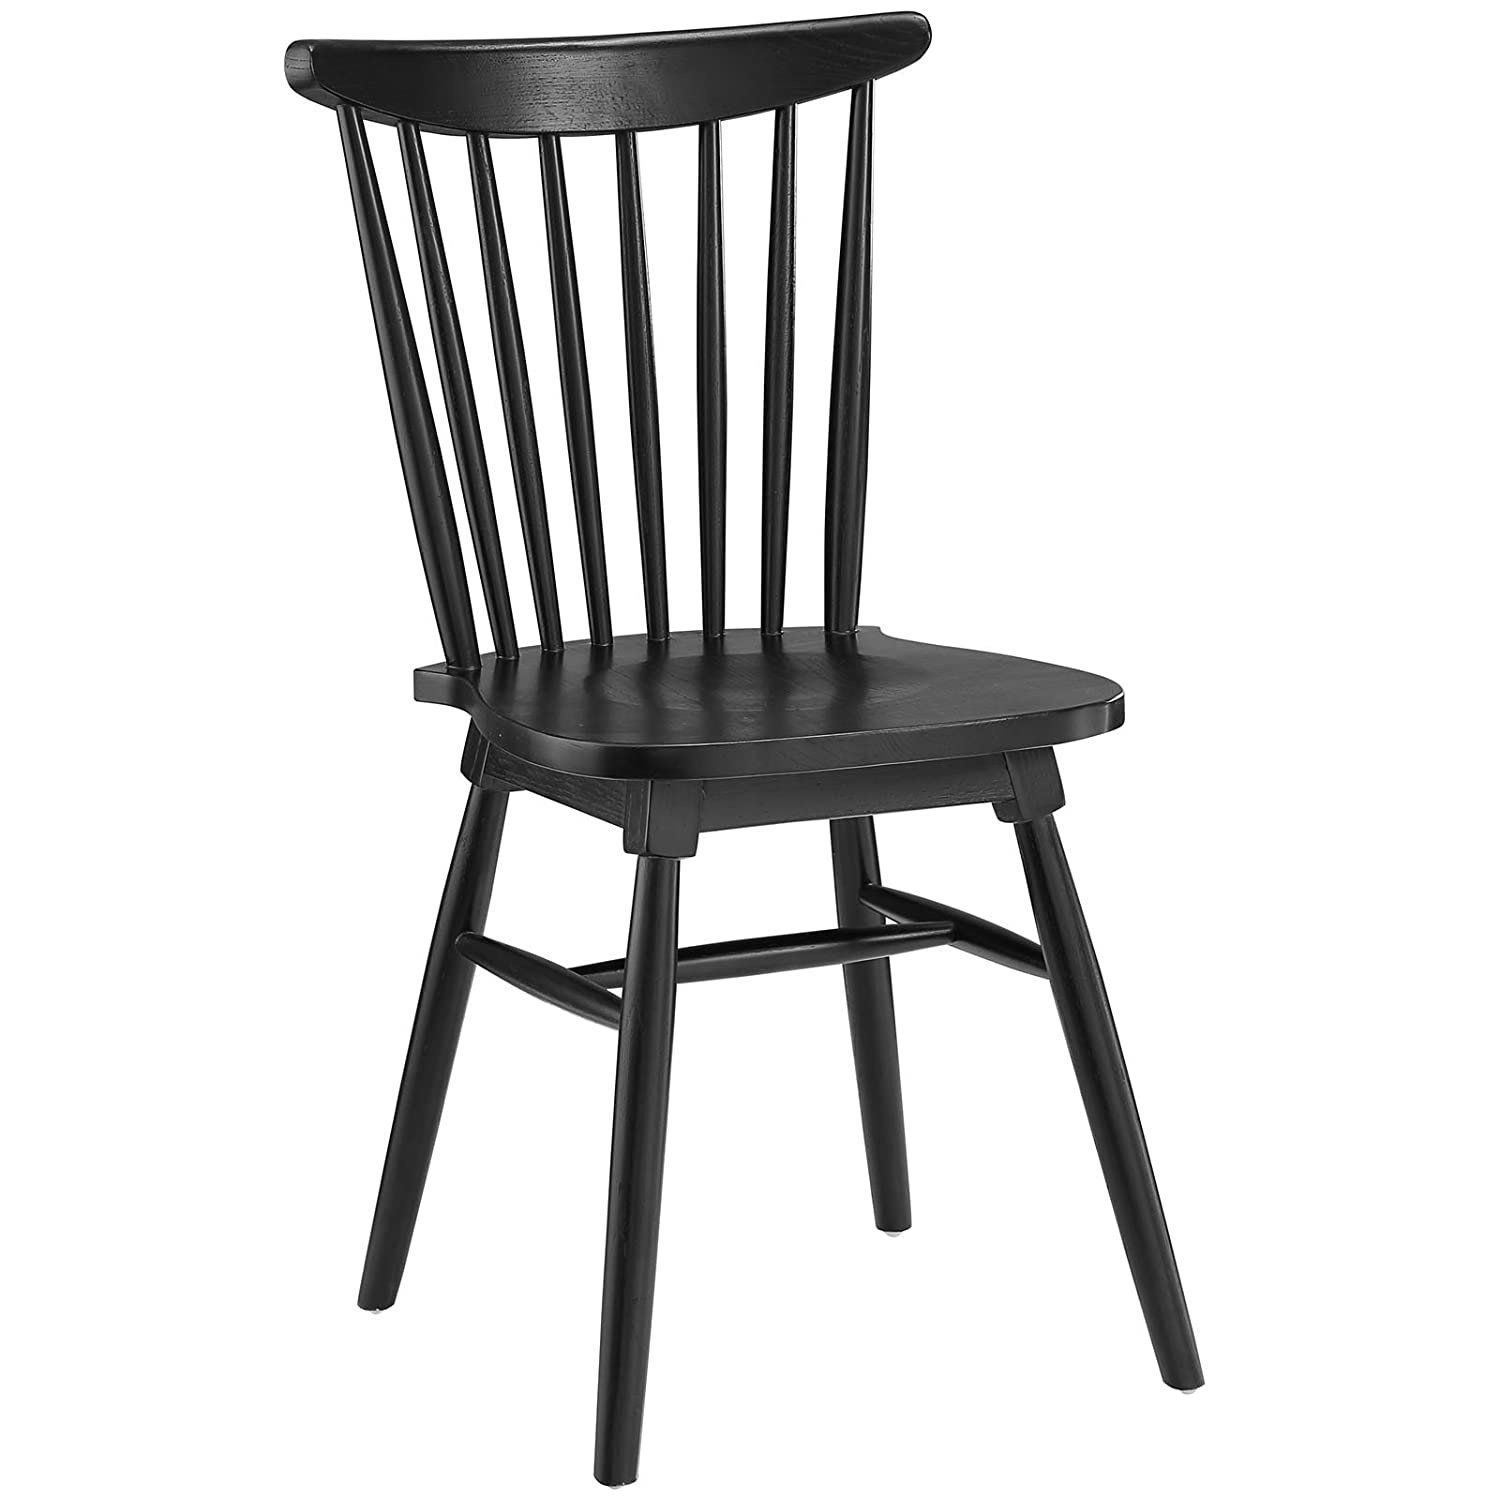 Modway Amble Windsor Spindle Back Elm Wood Kitchen and Dining Room Chair in Black